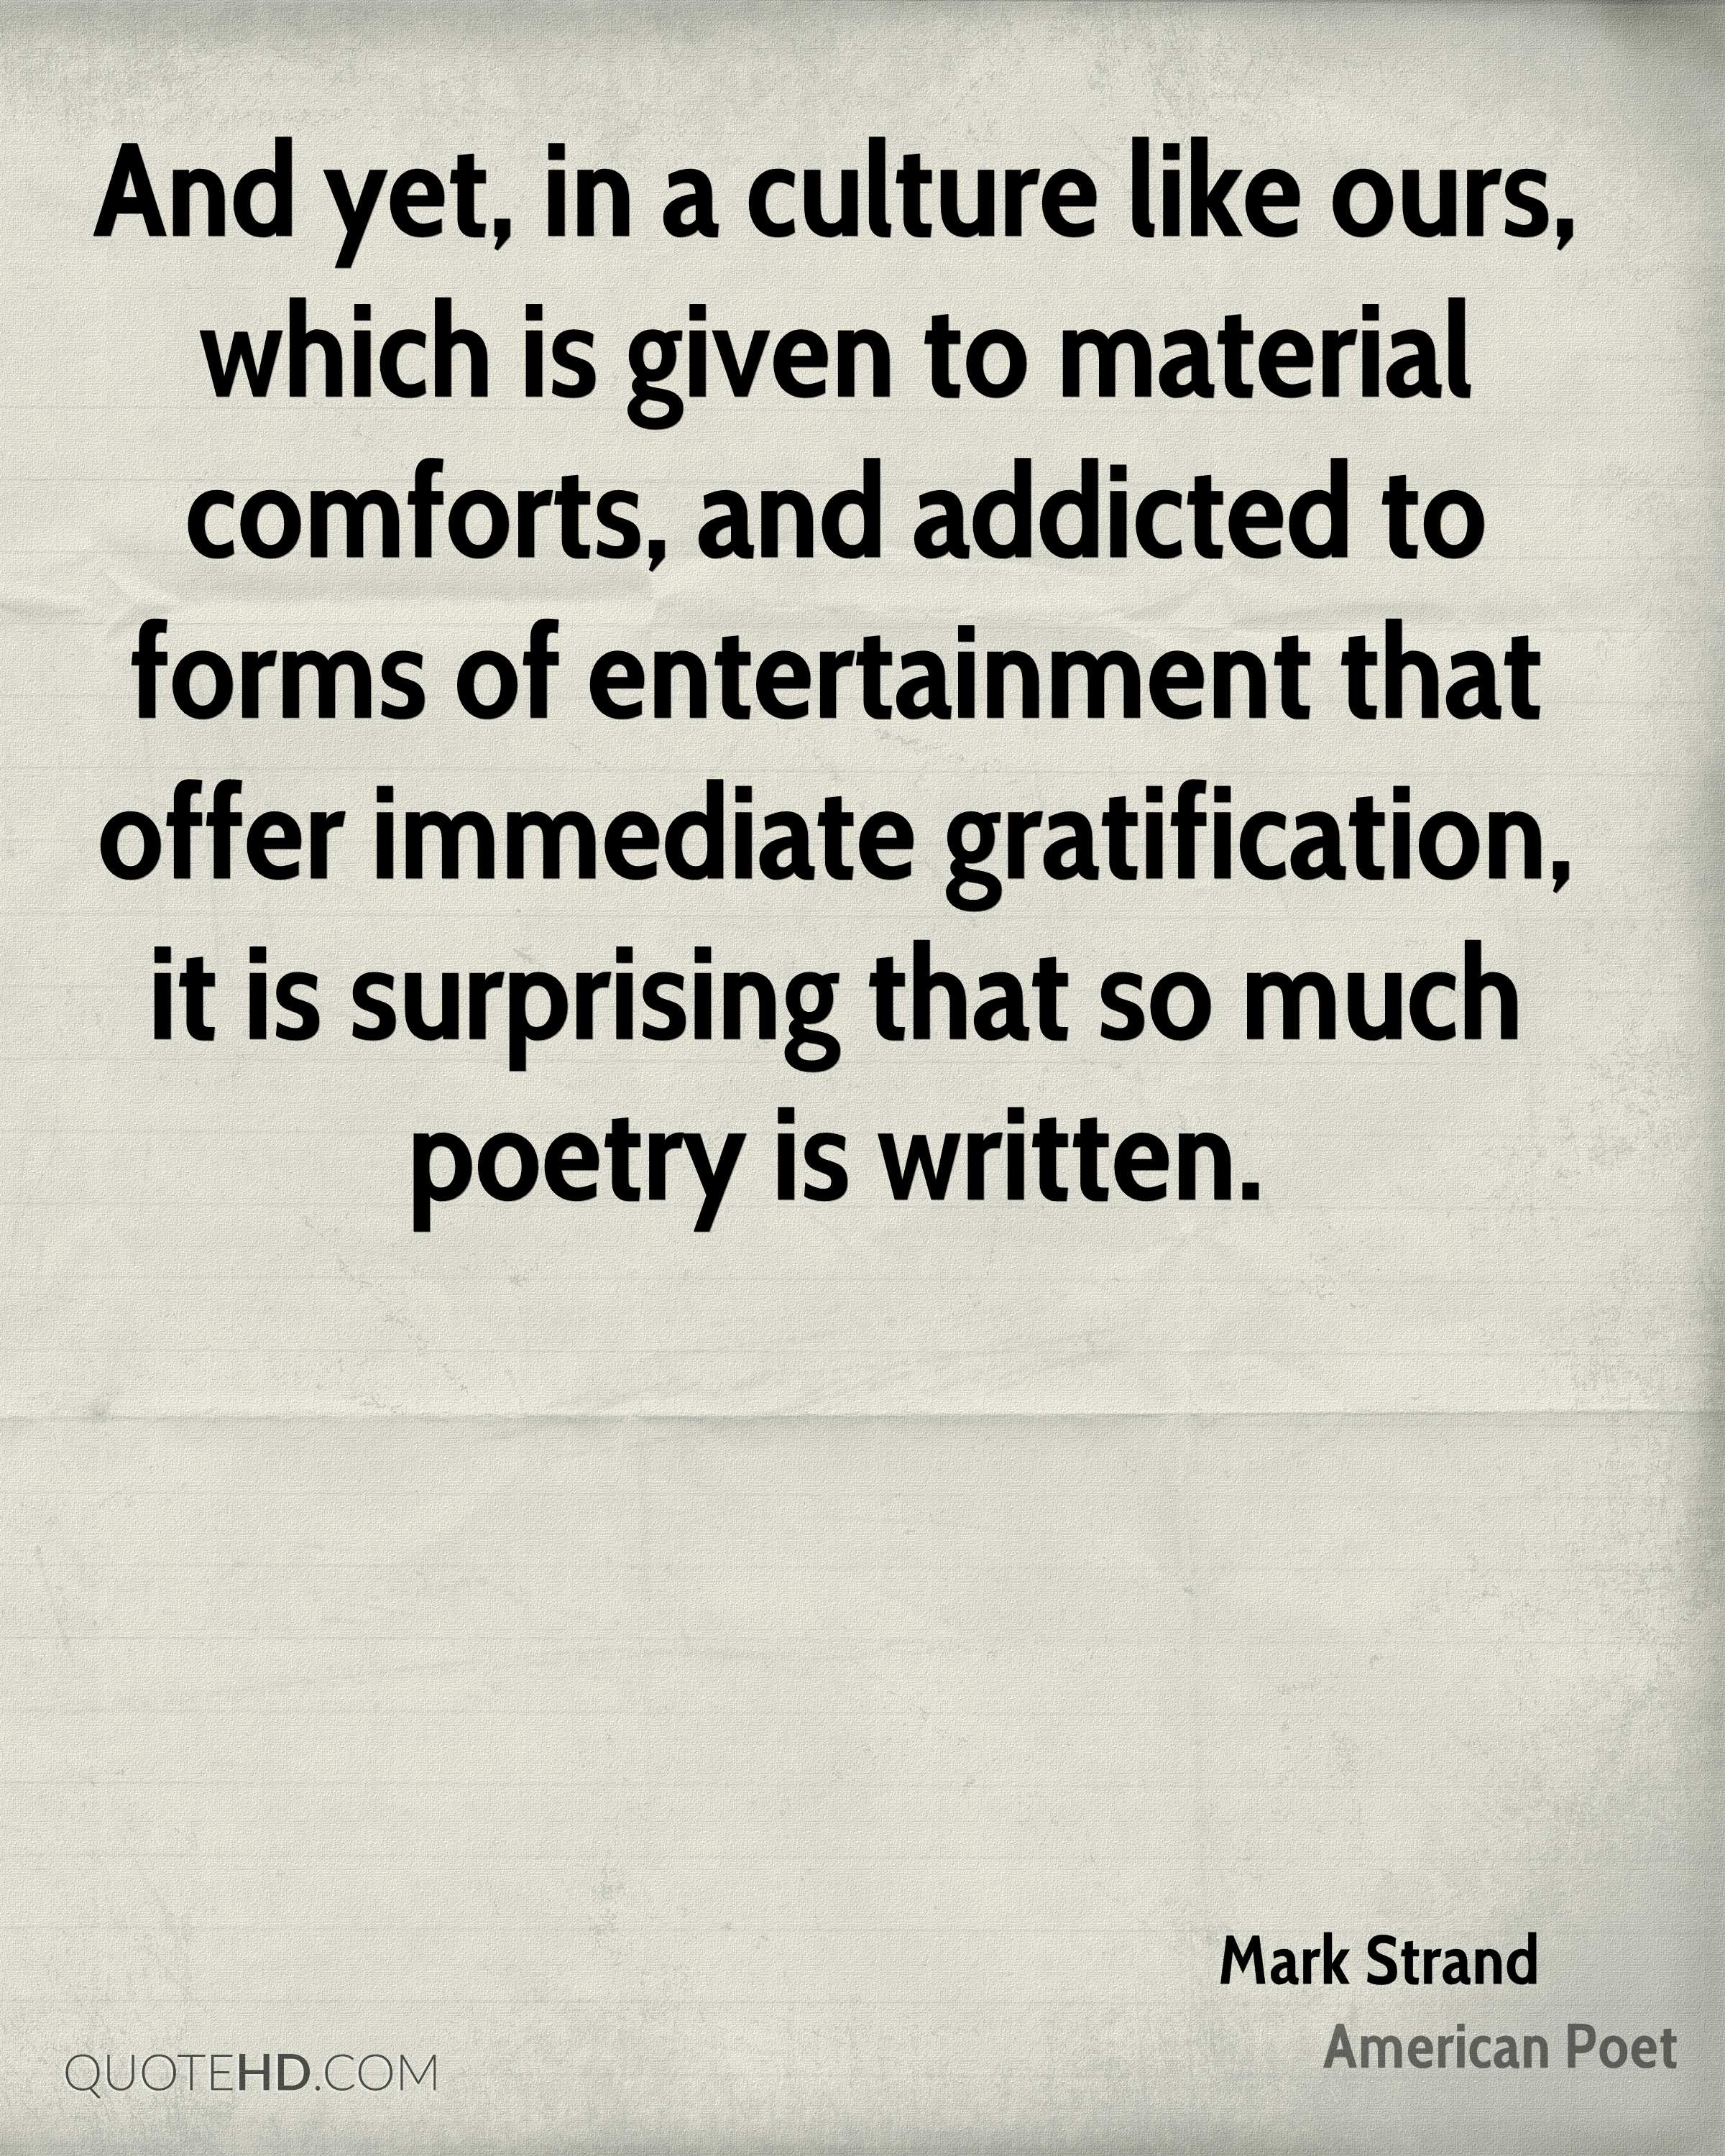 And yet, in a culture like ours, which is given to material comforts, and addicted to forms of entertainment that offer immediate gratification, it is surprising that so much poetry is written.